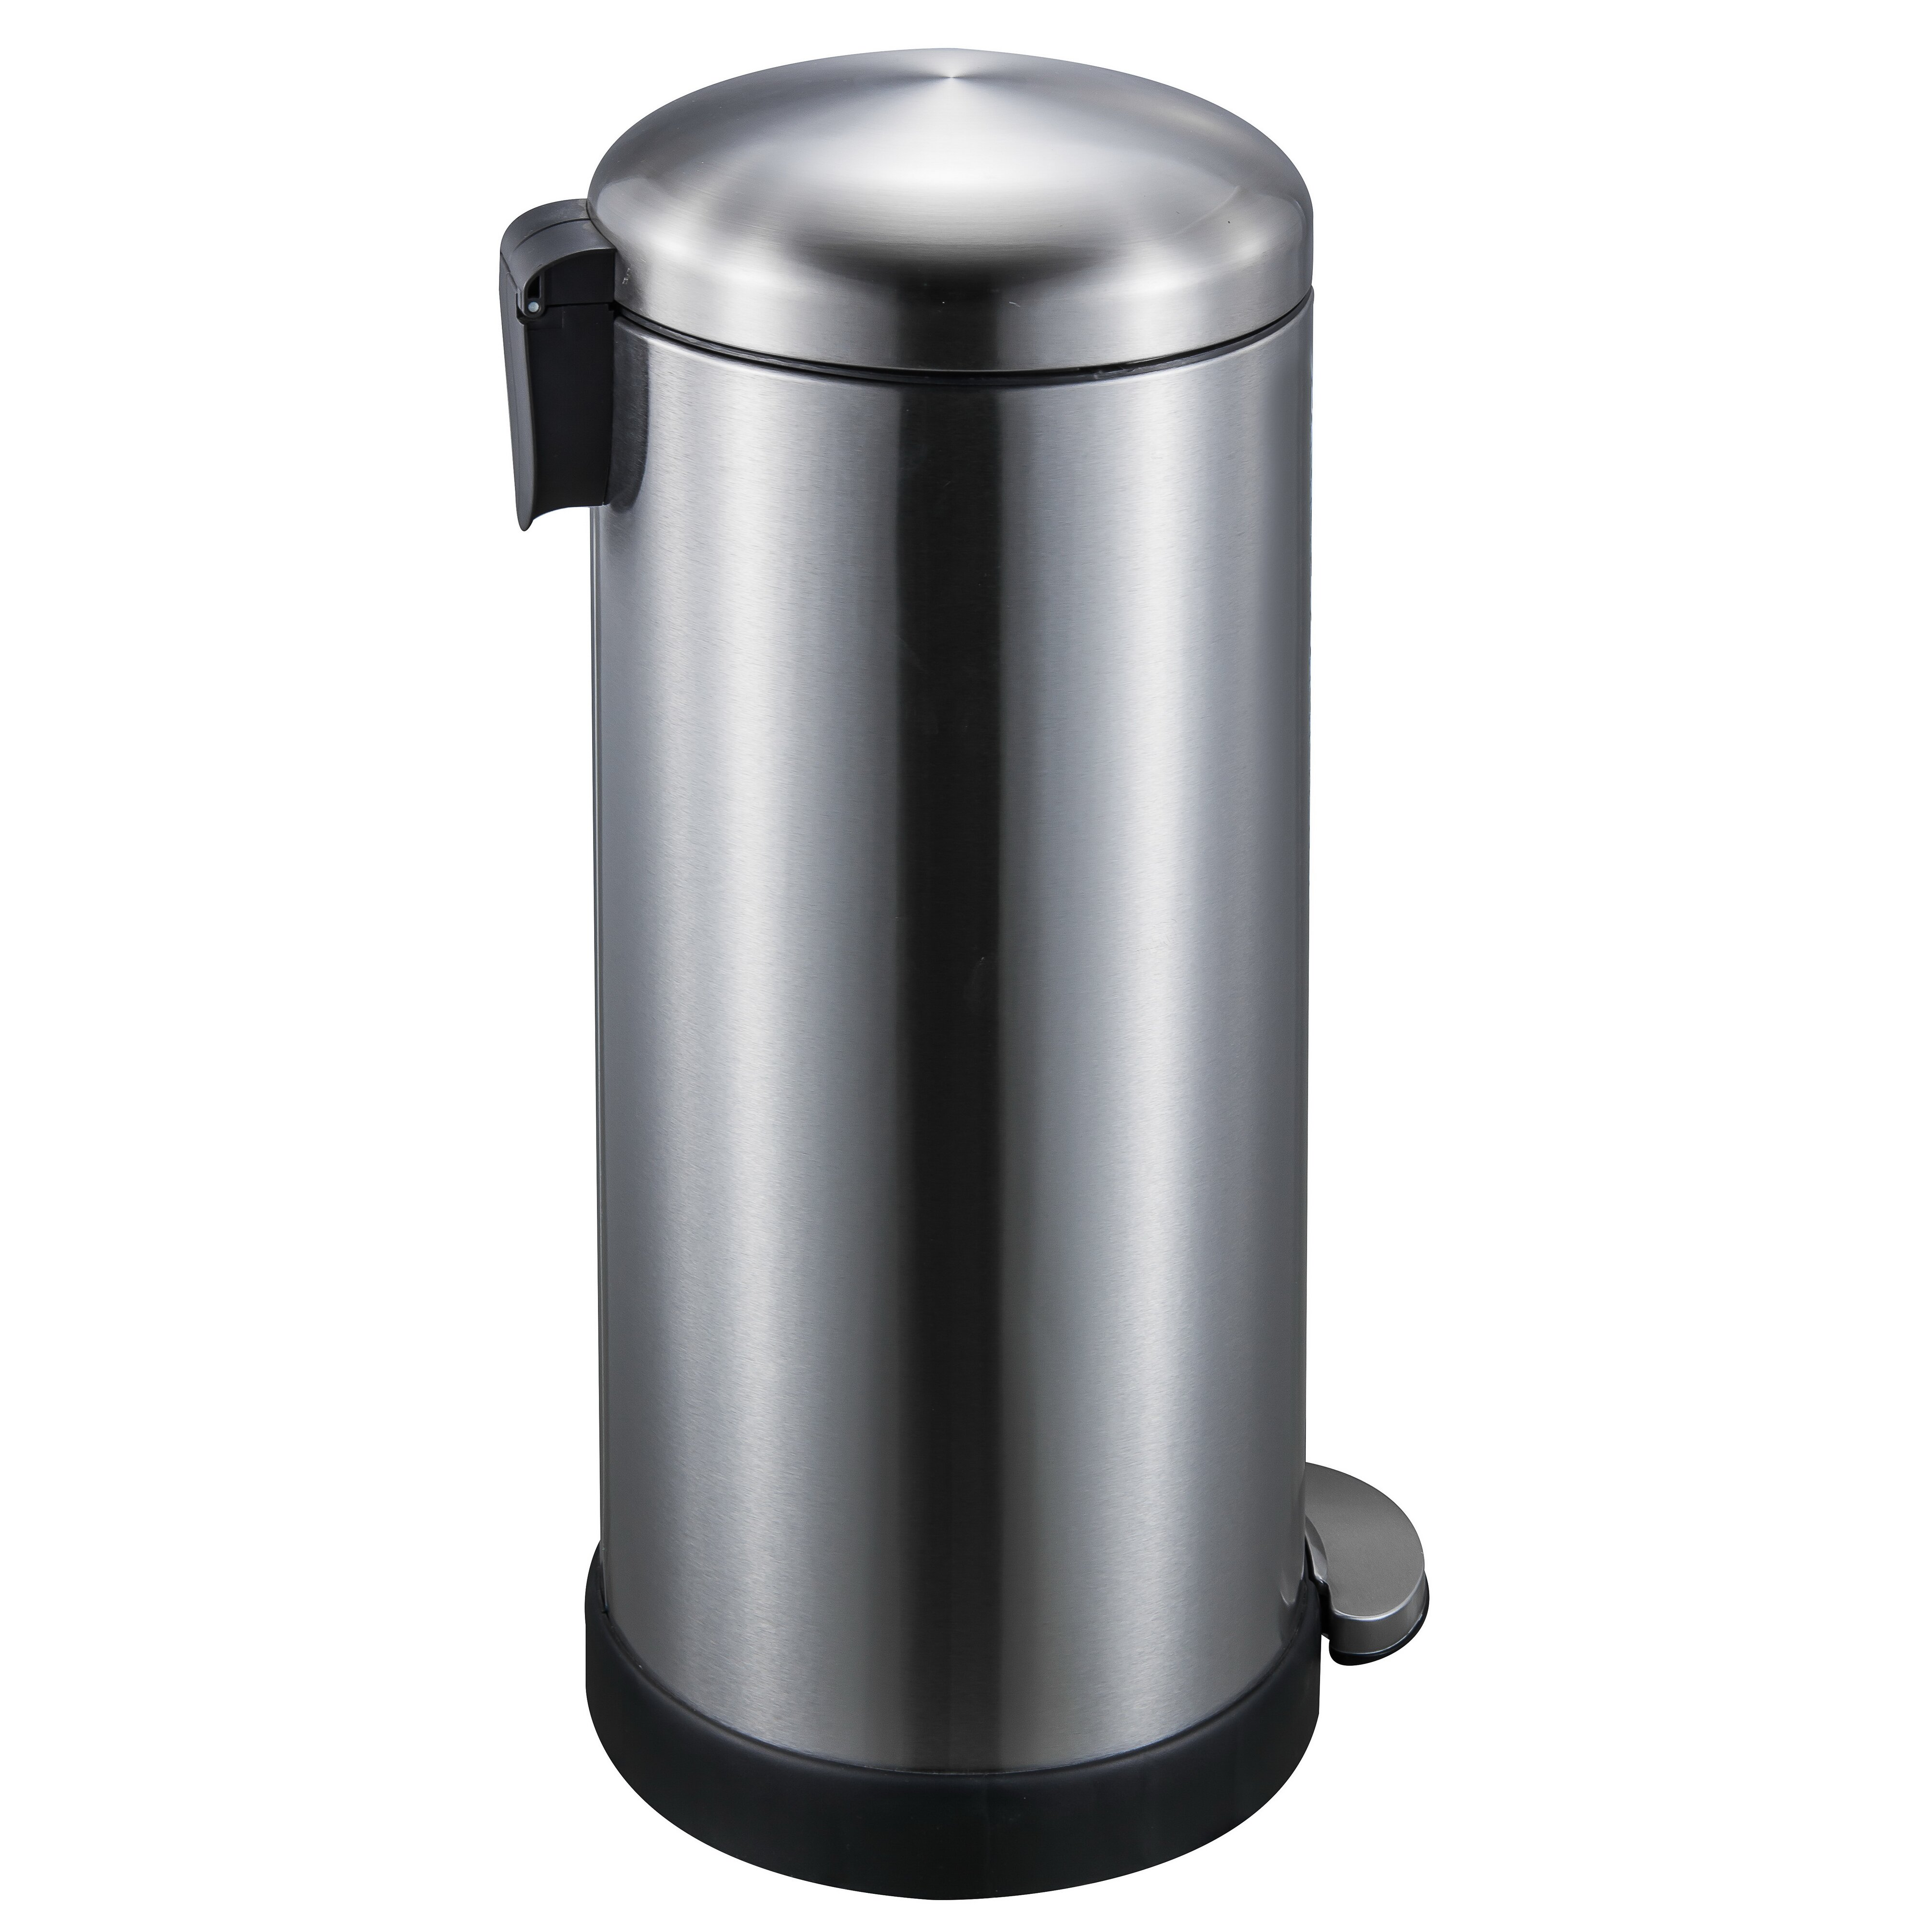 joyware 8 gallon step on stainless steel trash can reviews. Black Bedroom Furniture Sets. Home Design Ideas